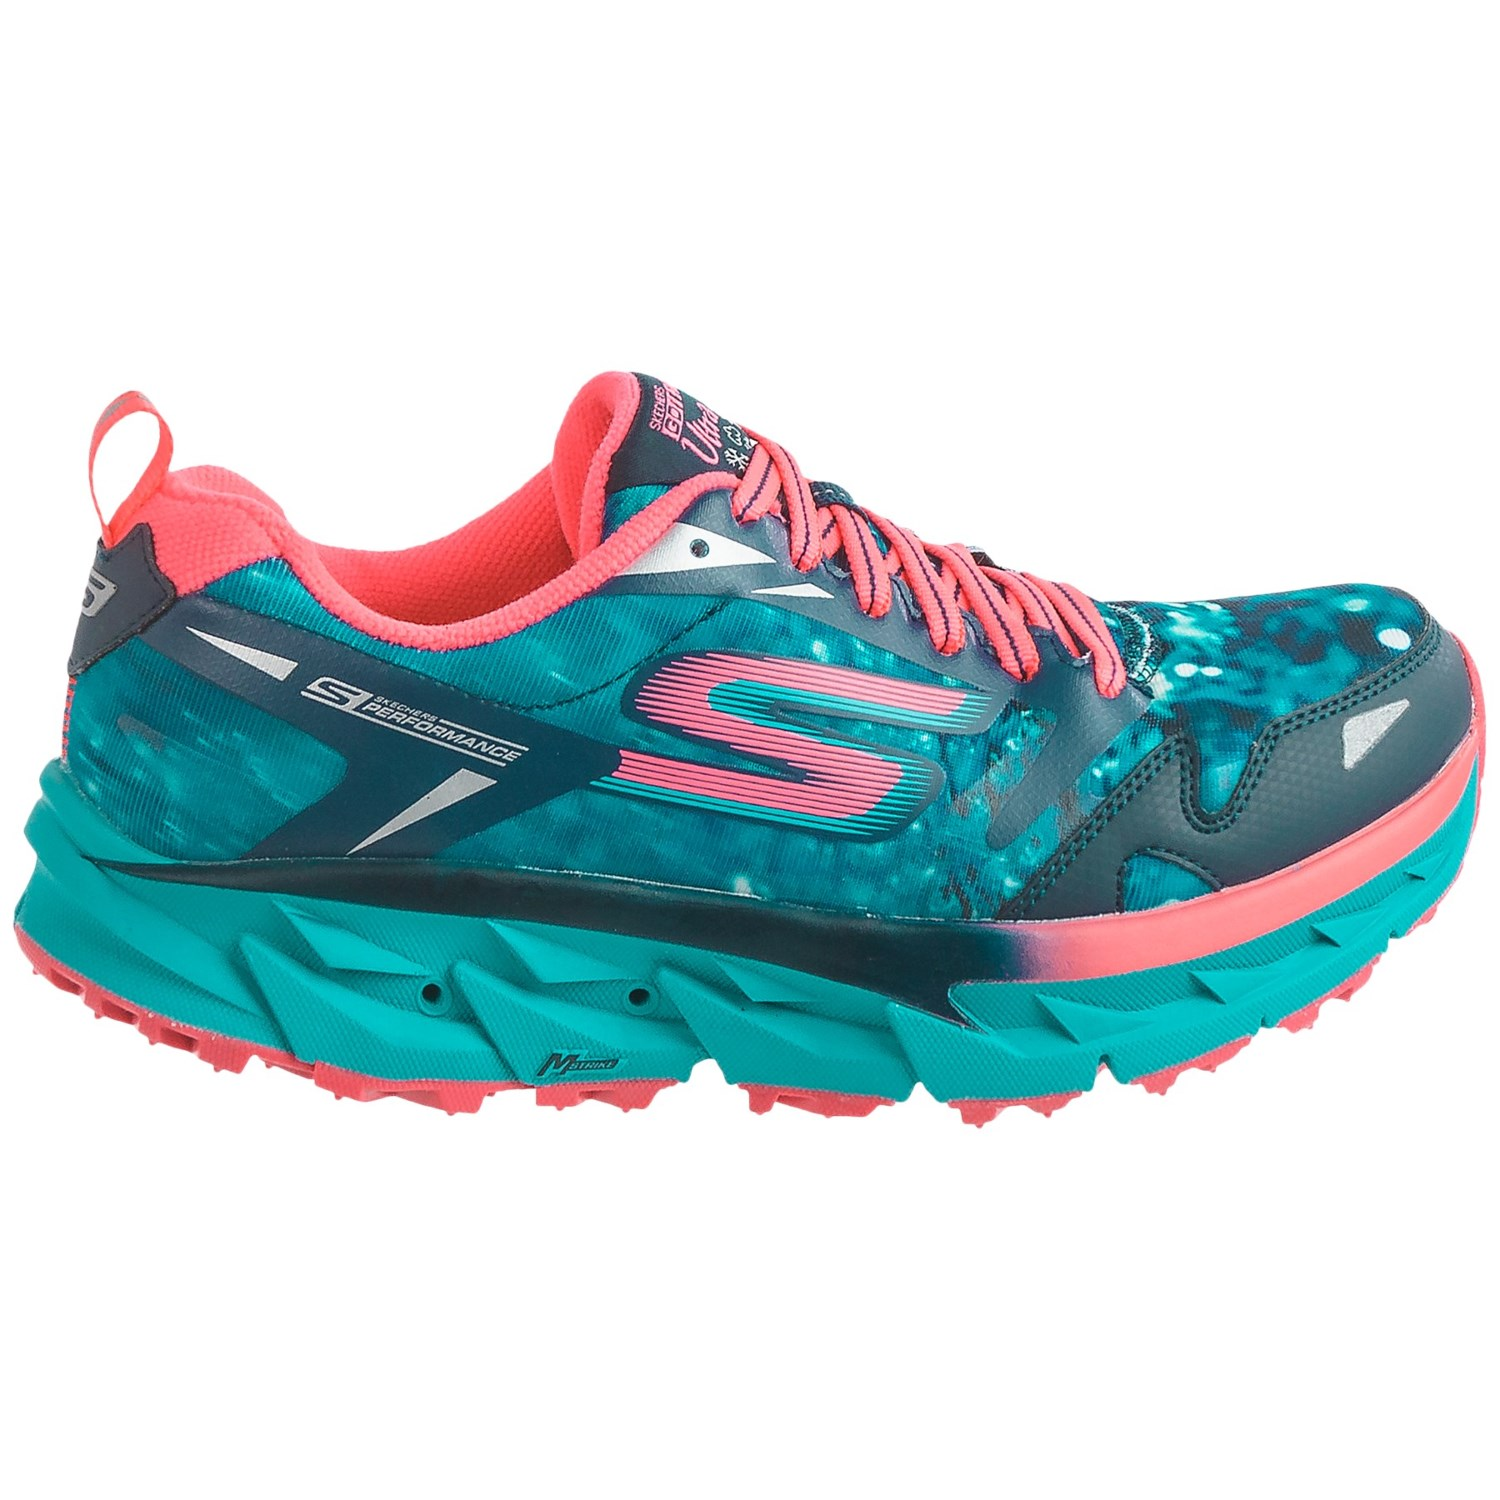 Skechers Go Trail Running Shoes